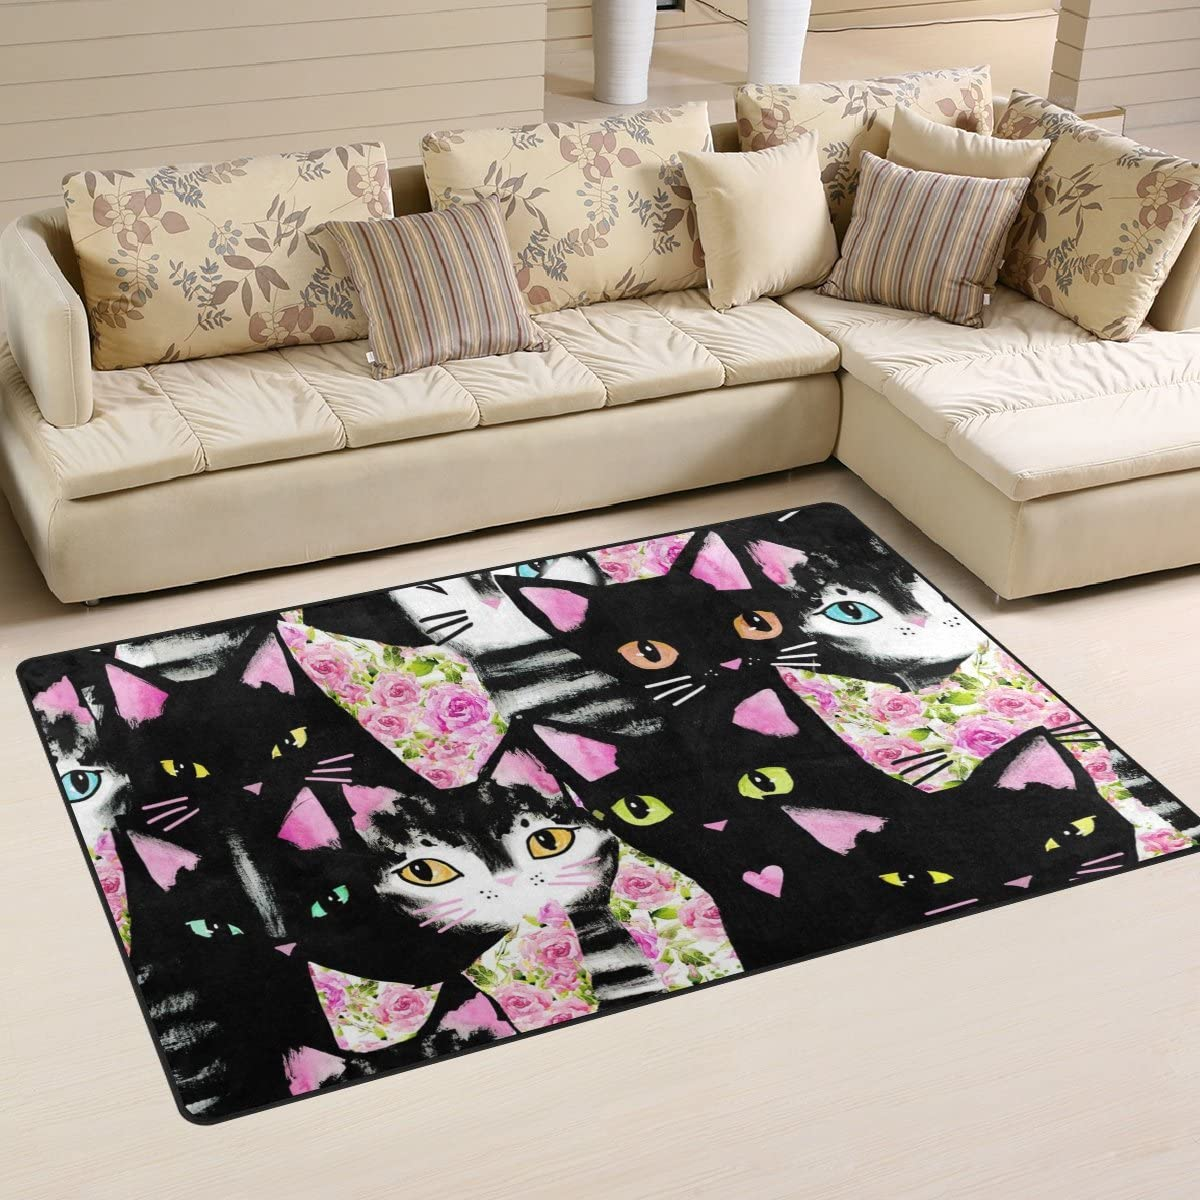 WOZO Black Cat Kitten Rose Flower Area Rug Rugs Non-Slip Floor Mat Doormat